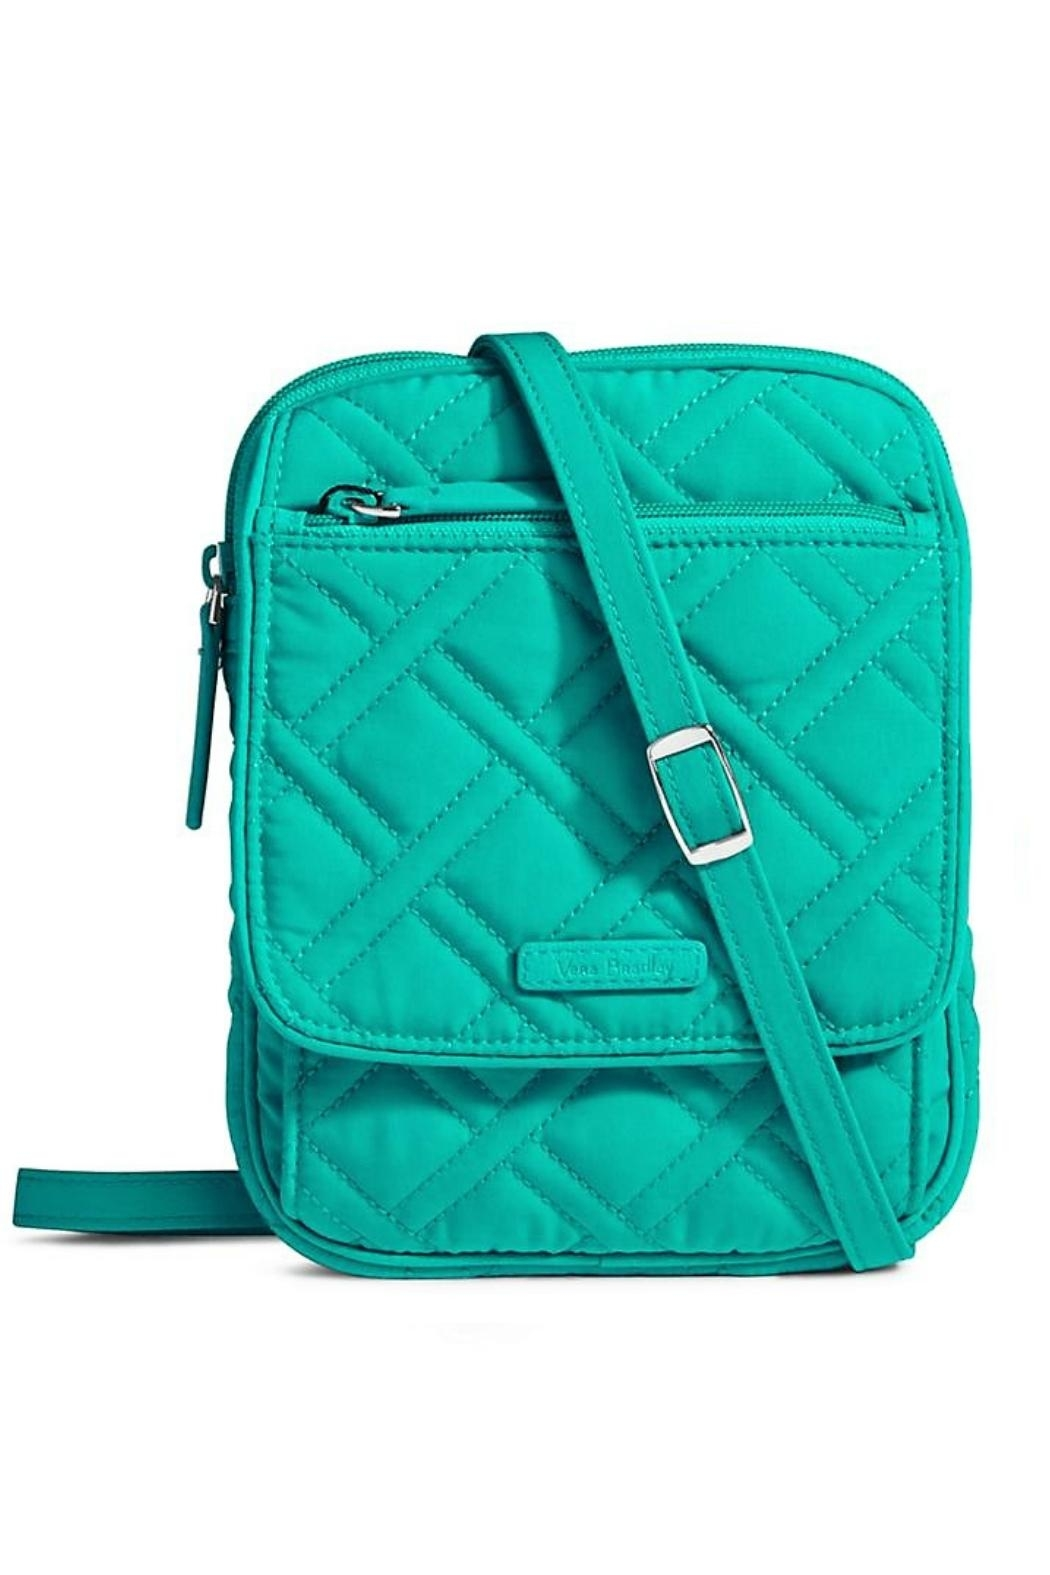 Vera Bradley Turquoise Sea Crossbody Bag - Front Cropped Image